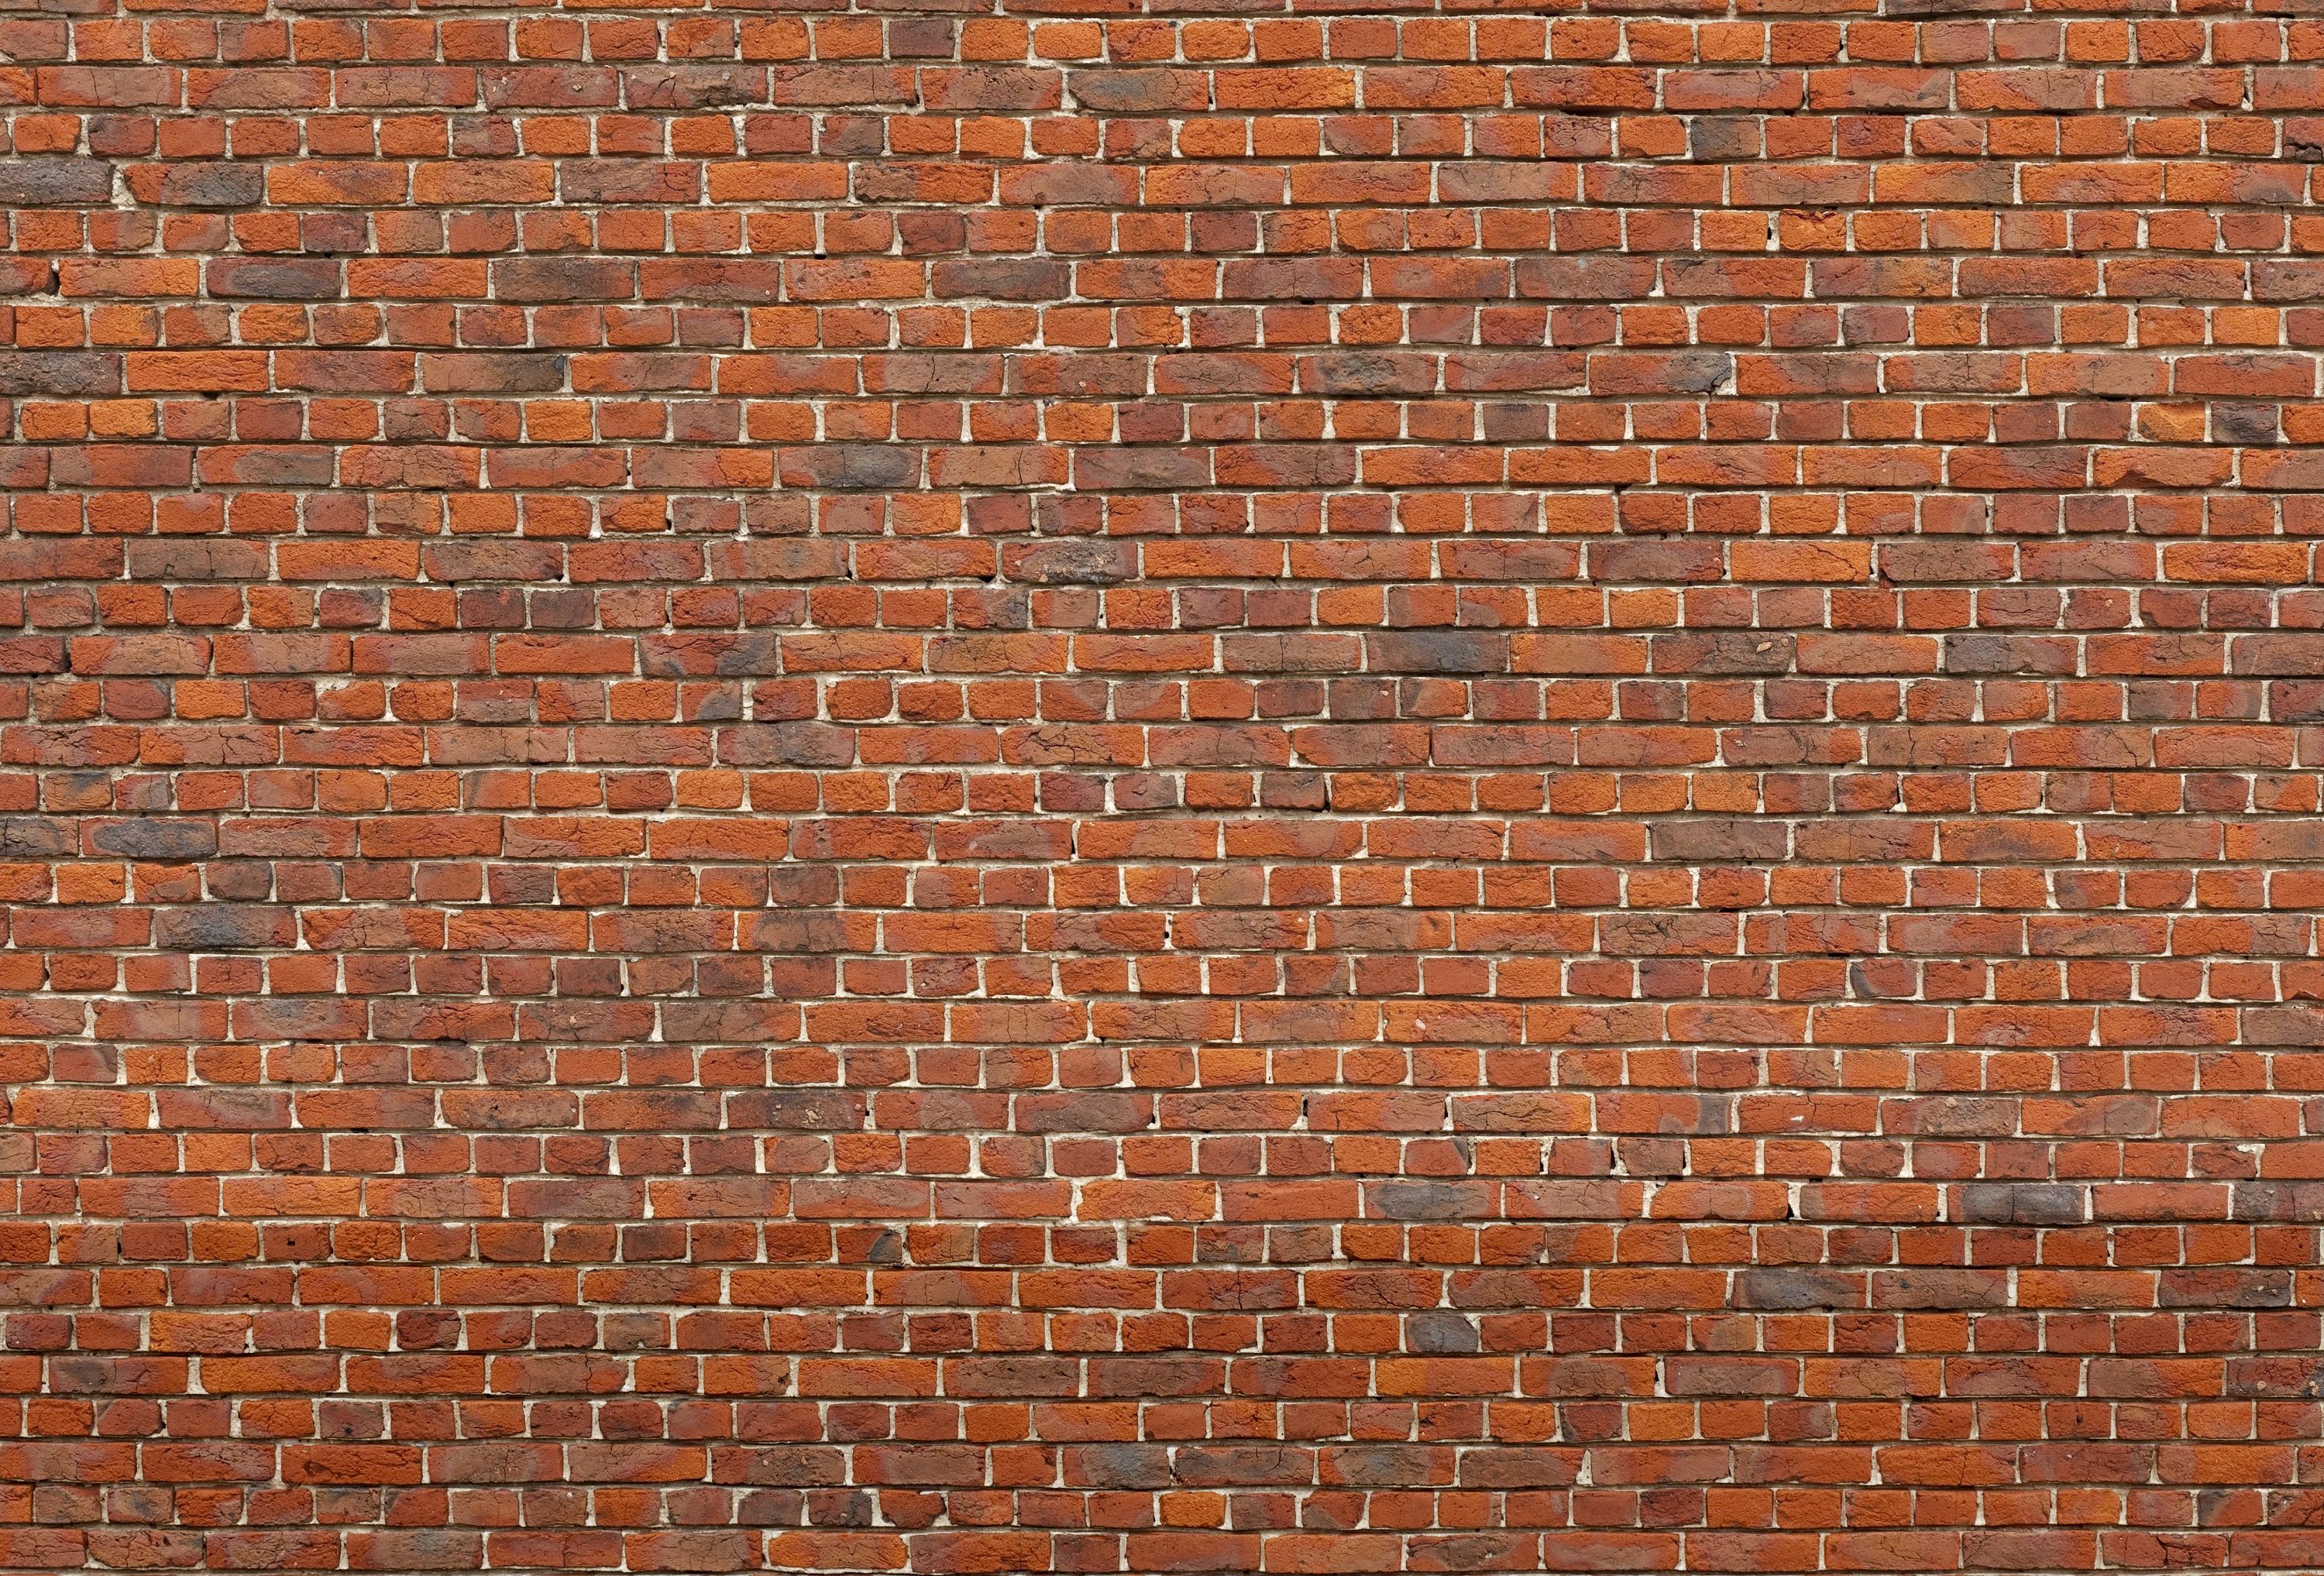 Brick wall texture download photo image bricks brick for Wallpaper images for house walls